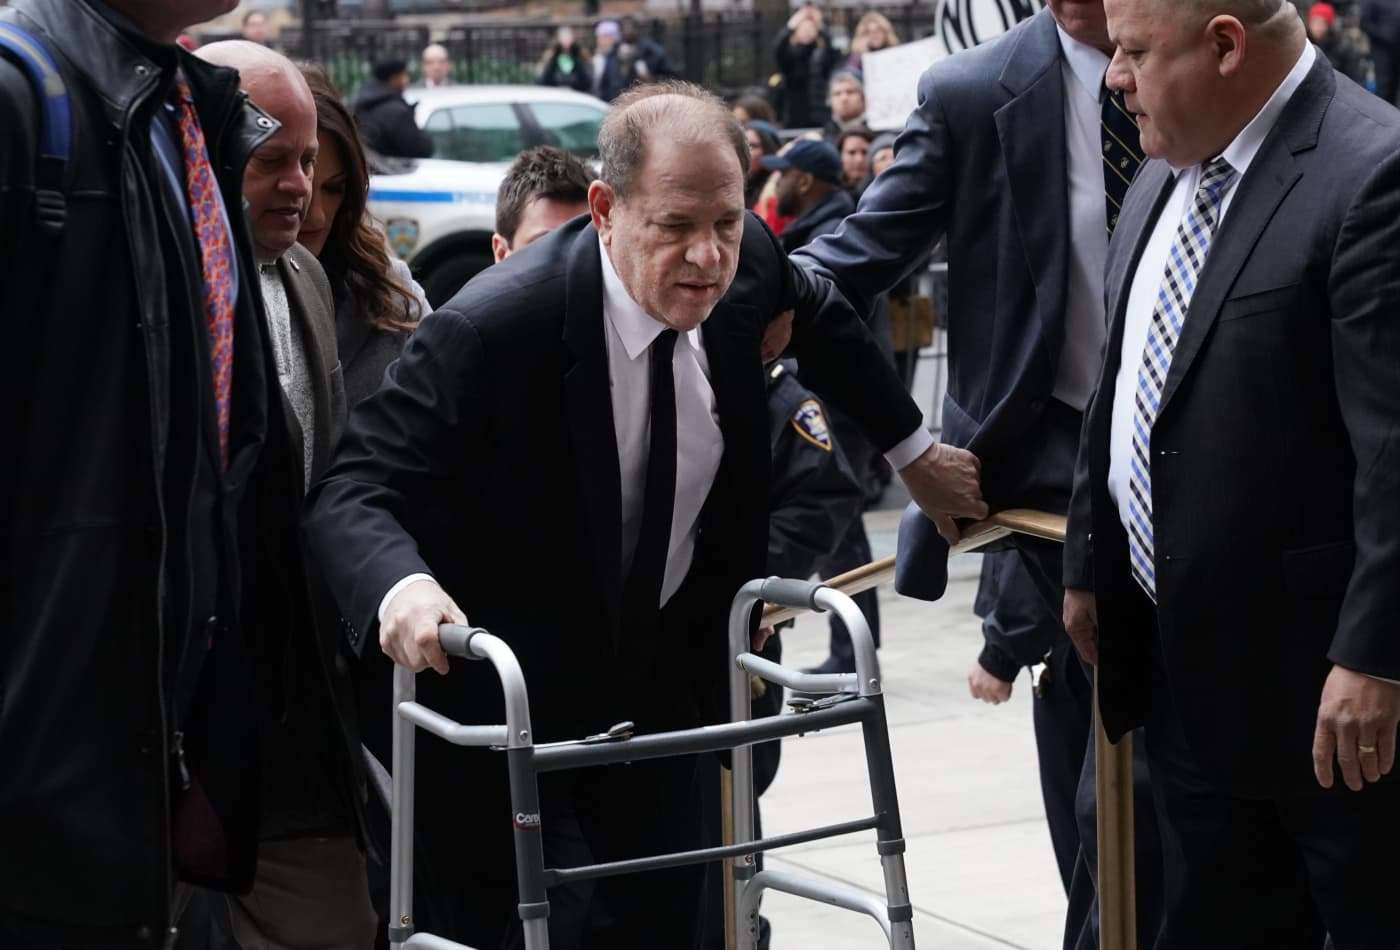 Harvey Weinstein charged in Los Angeles with rape, sex assault, as movie mogul kicks off rape trial in New York